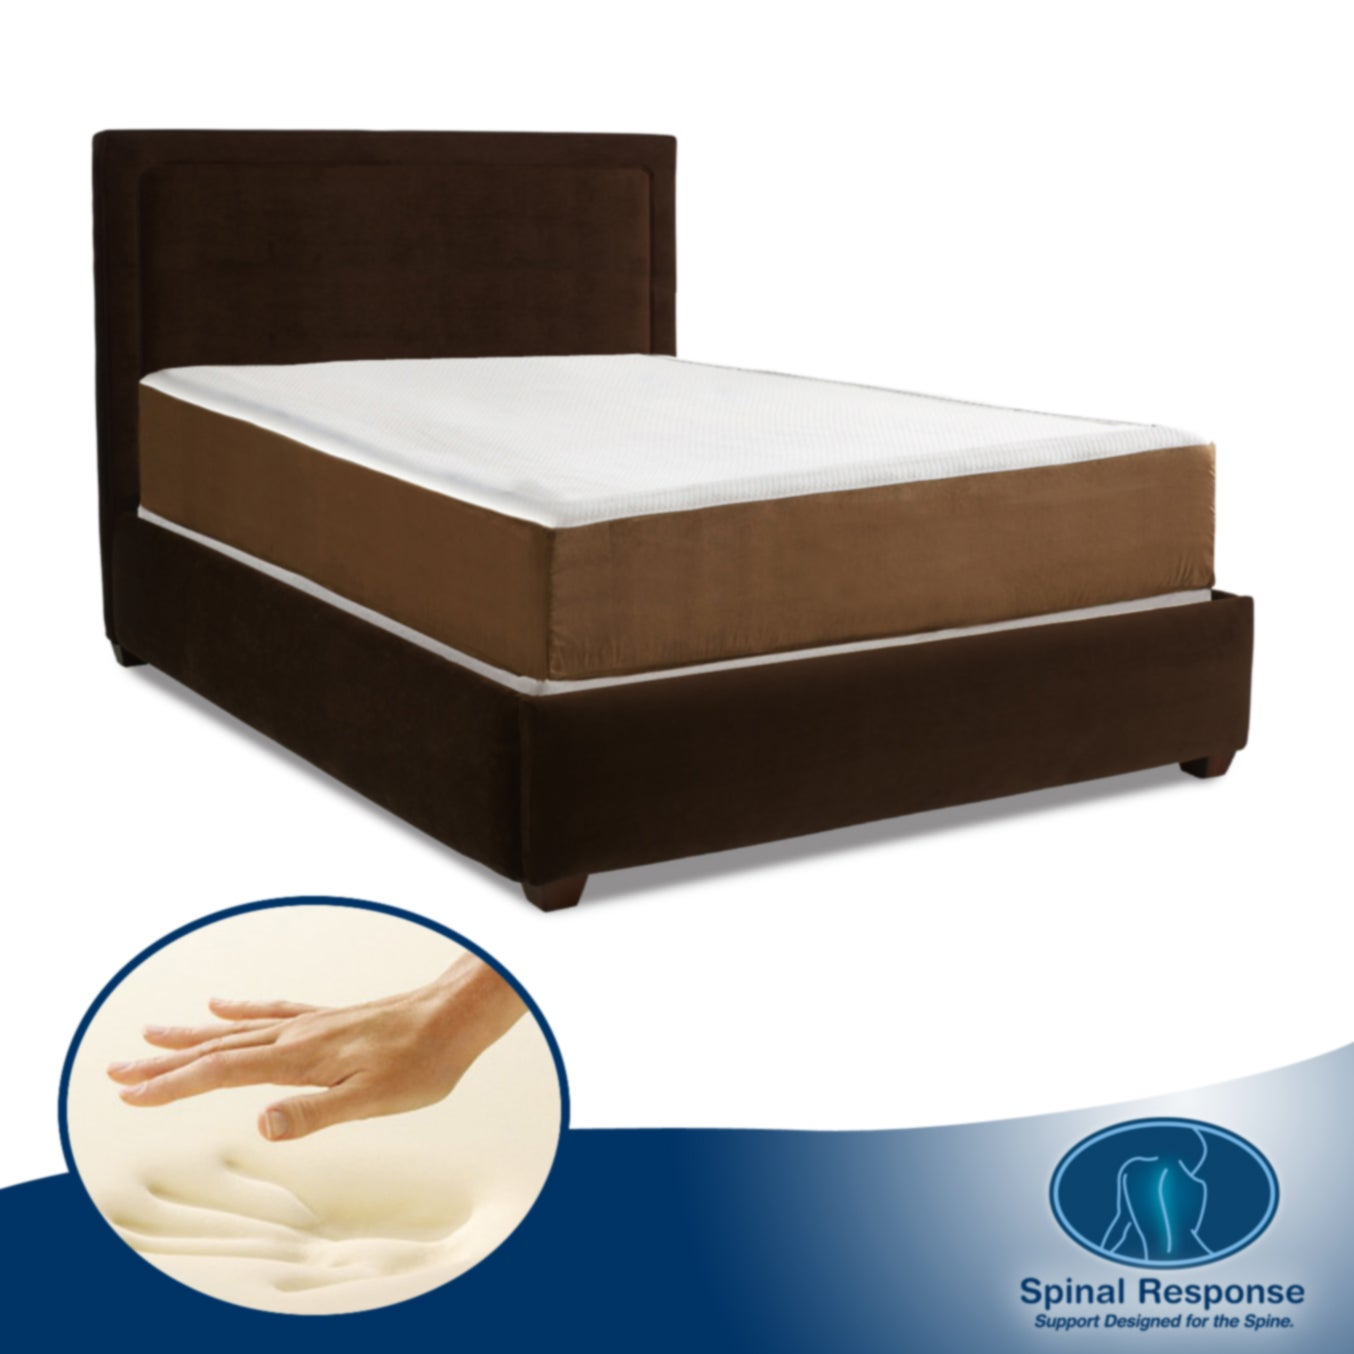 Spinal Response Exquisite 8-inch Full-size Memory Foam Mattress